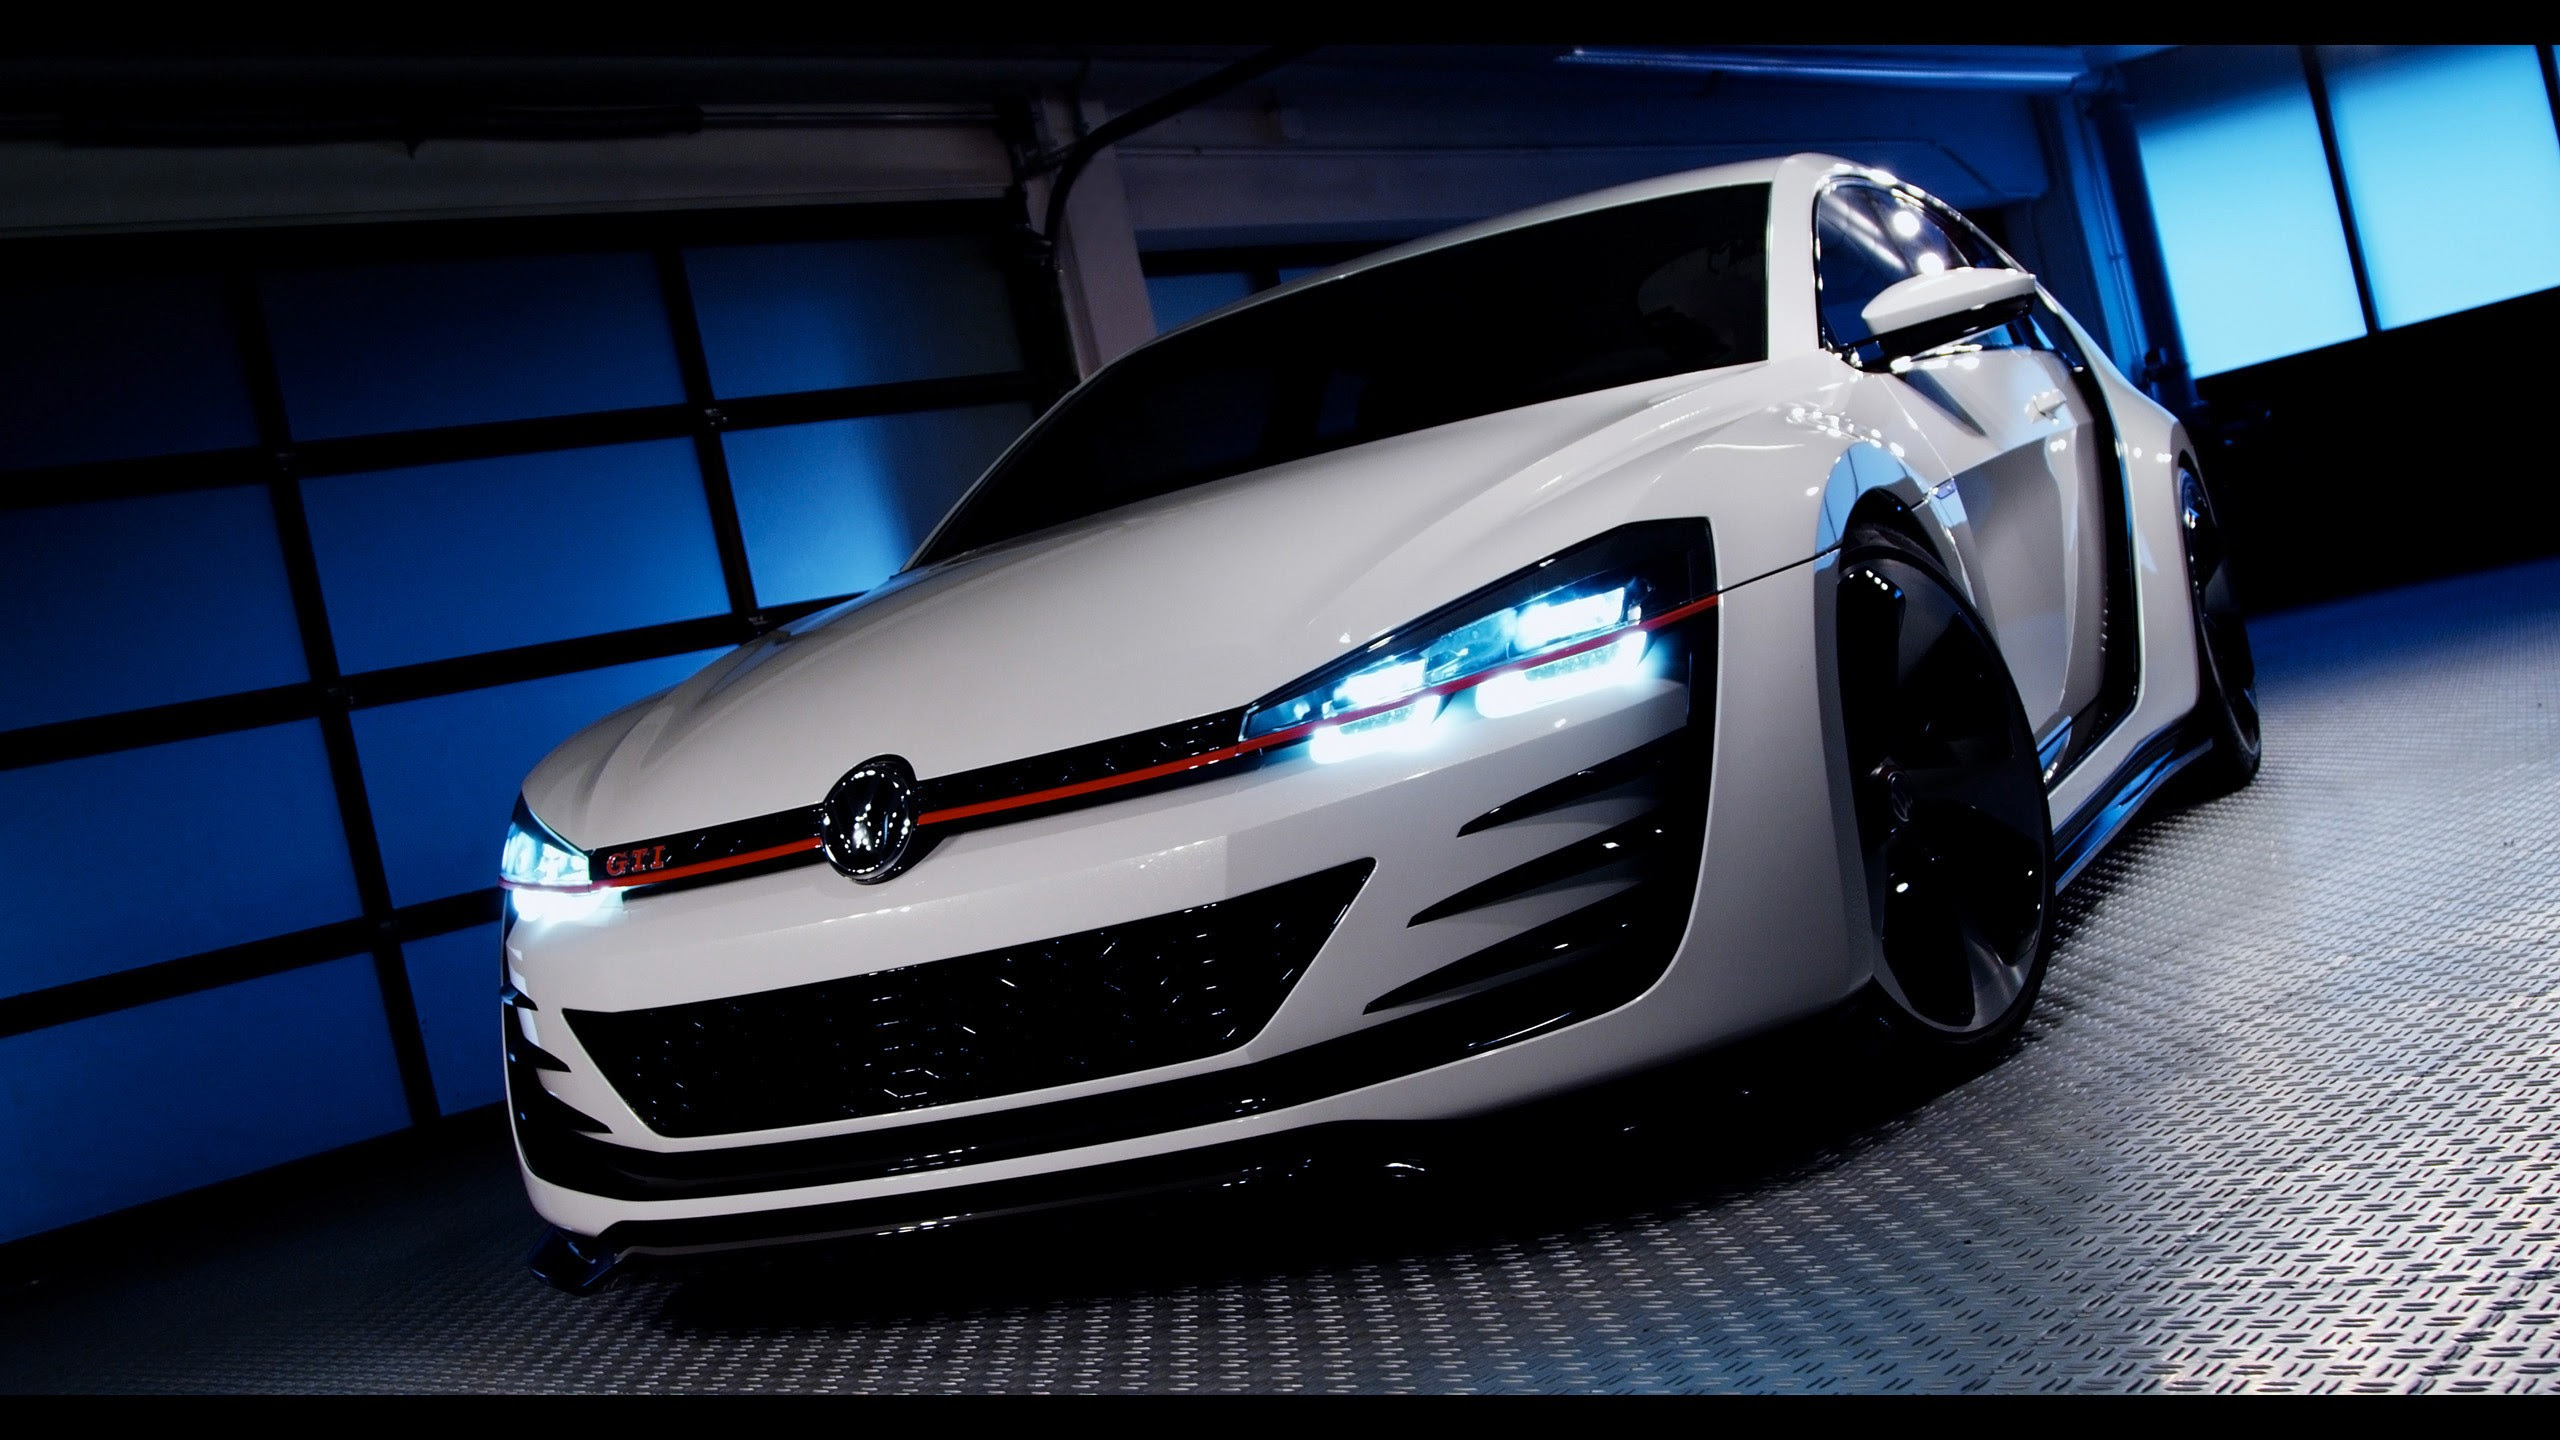 Volkswagen Design Vision GTI Wallpaper | HD Car Wallpapers ...